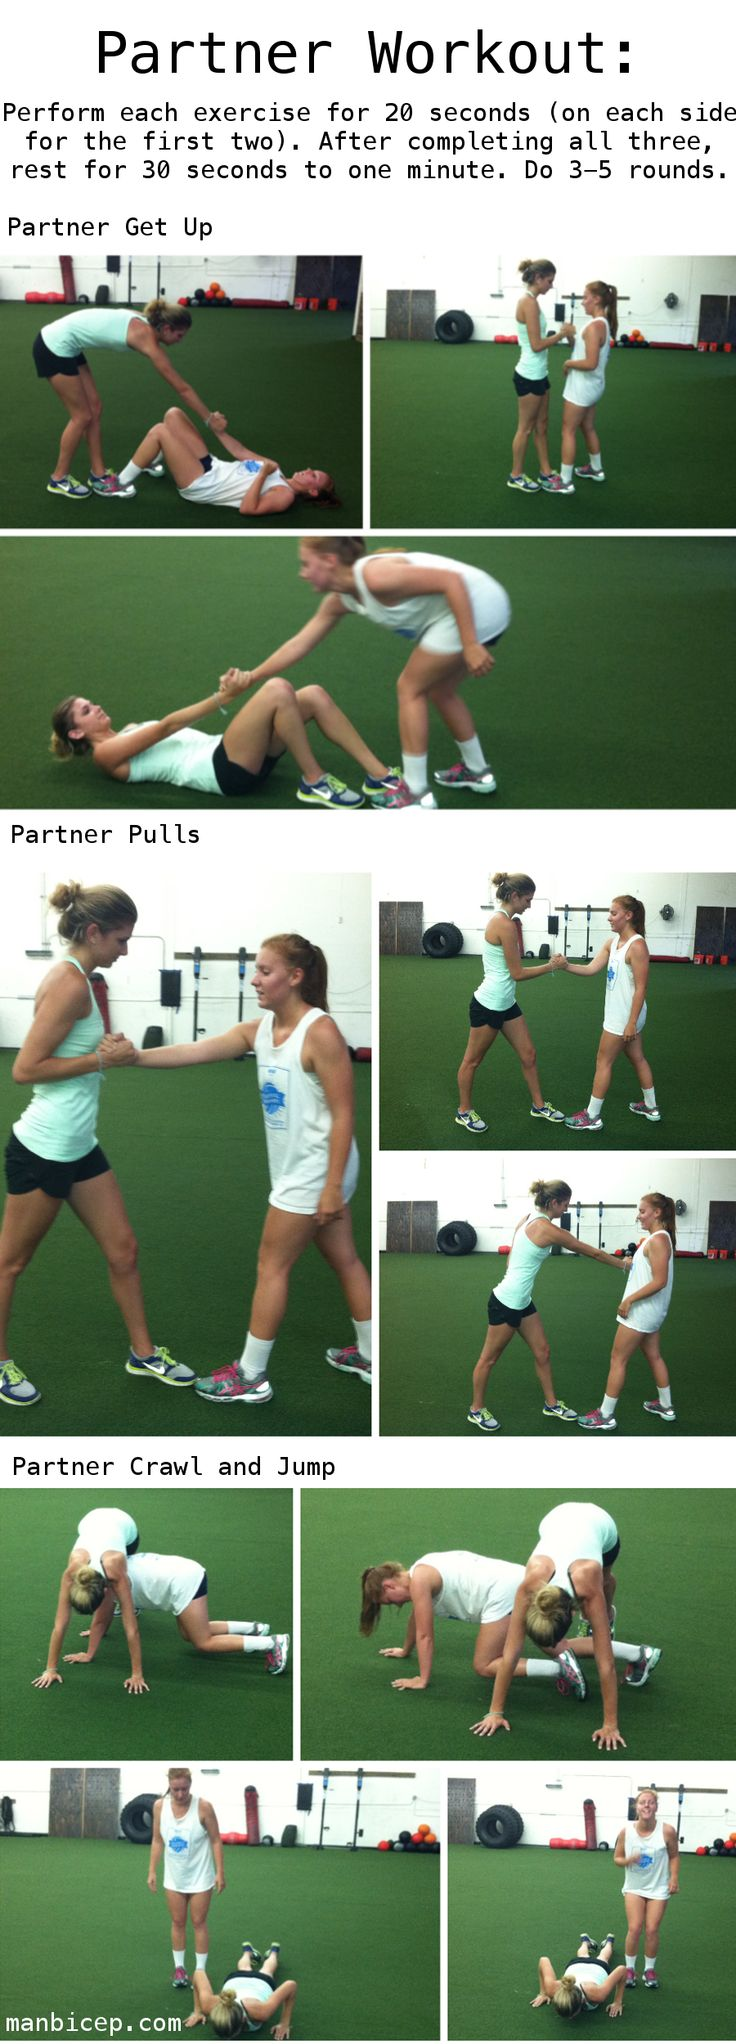 37 Best Images About Partner Workouts On Pinterest